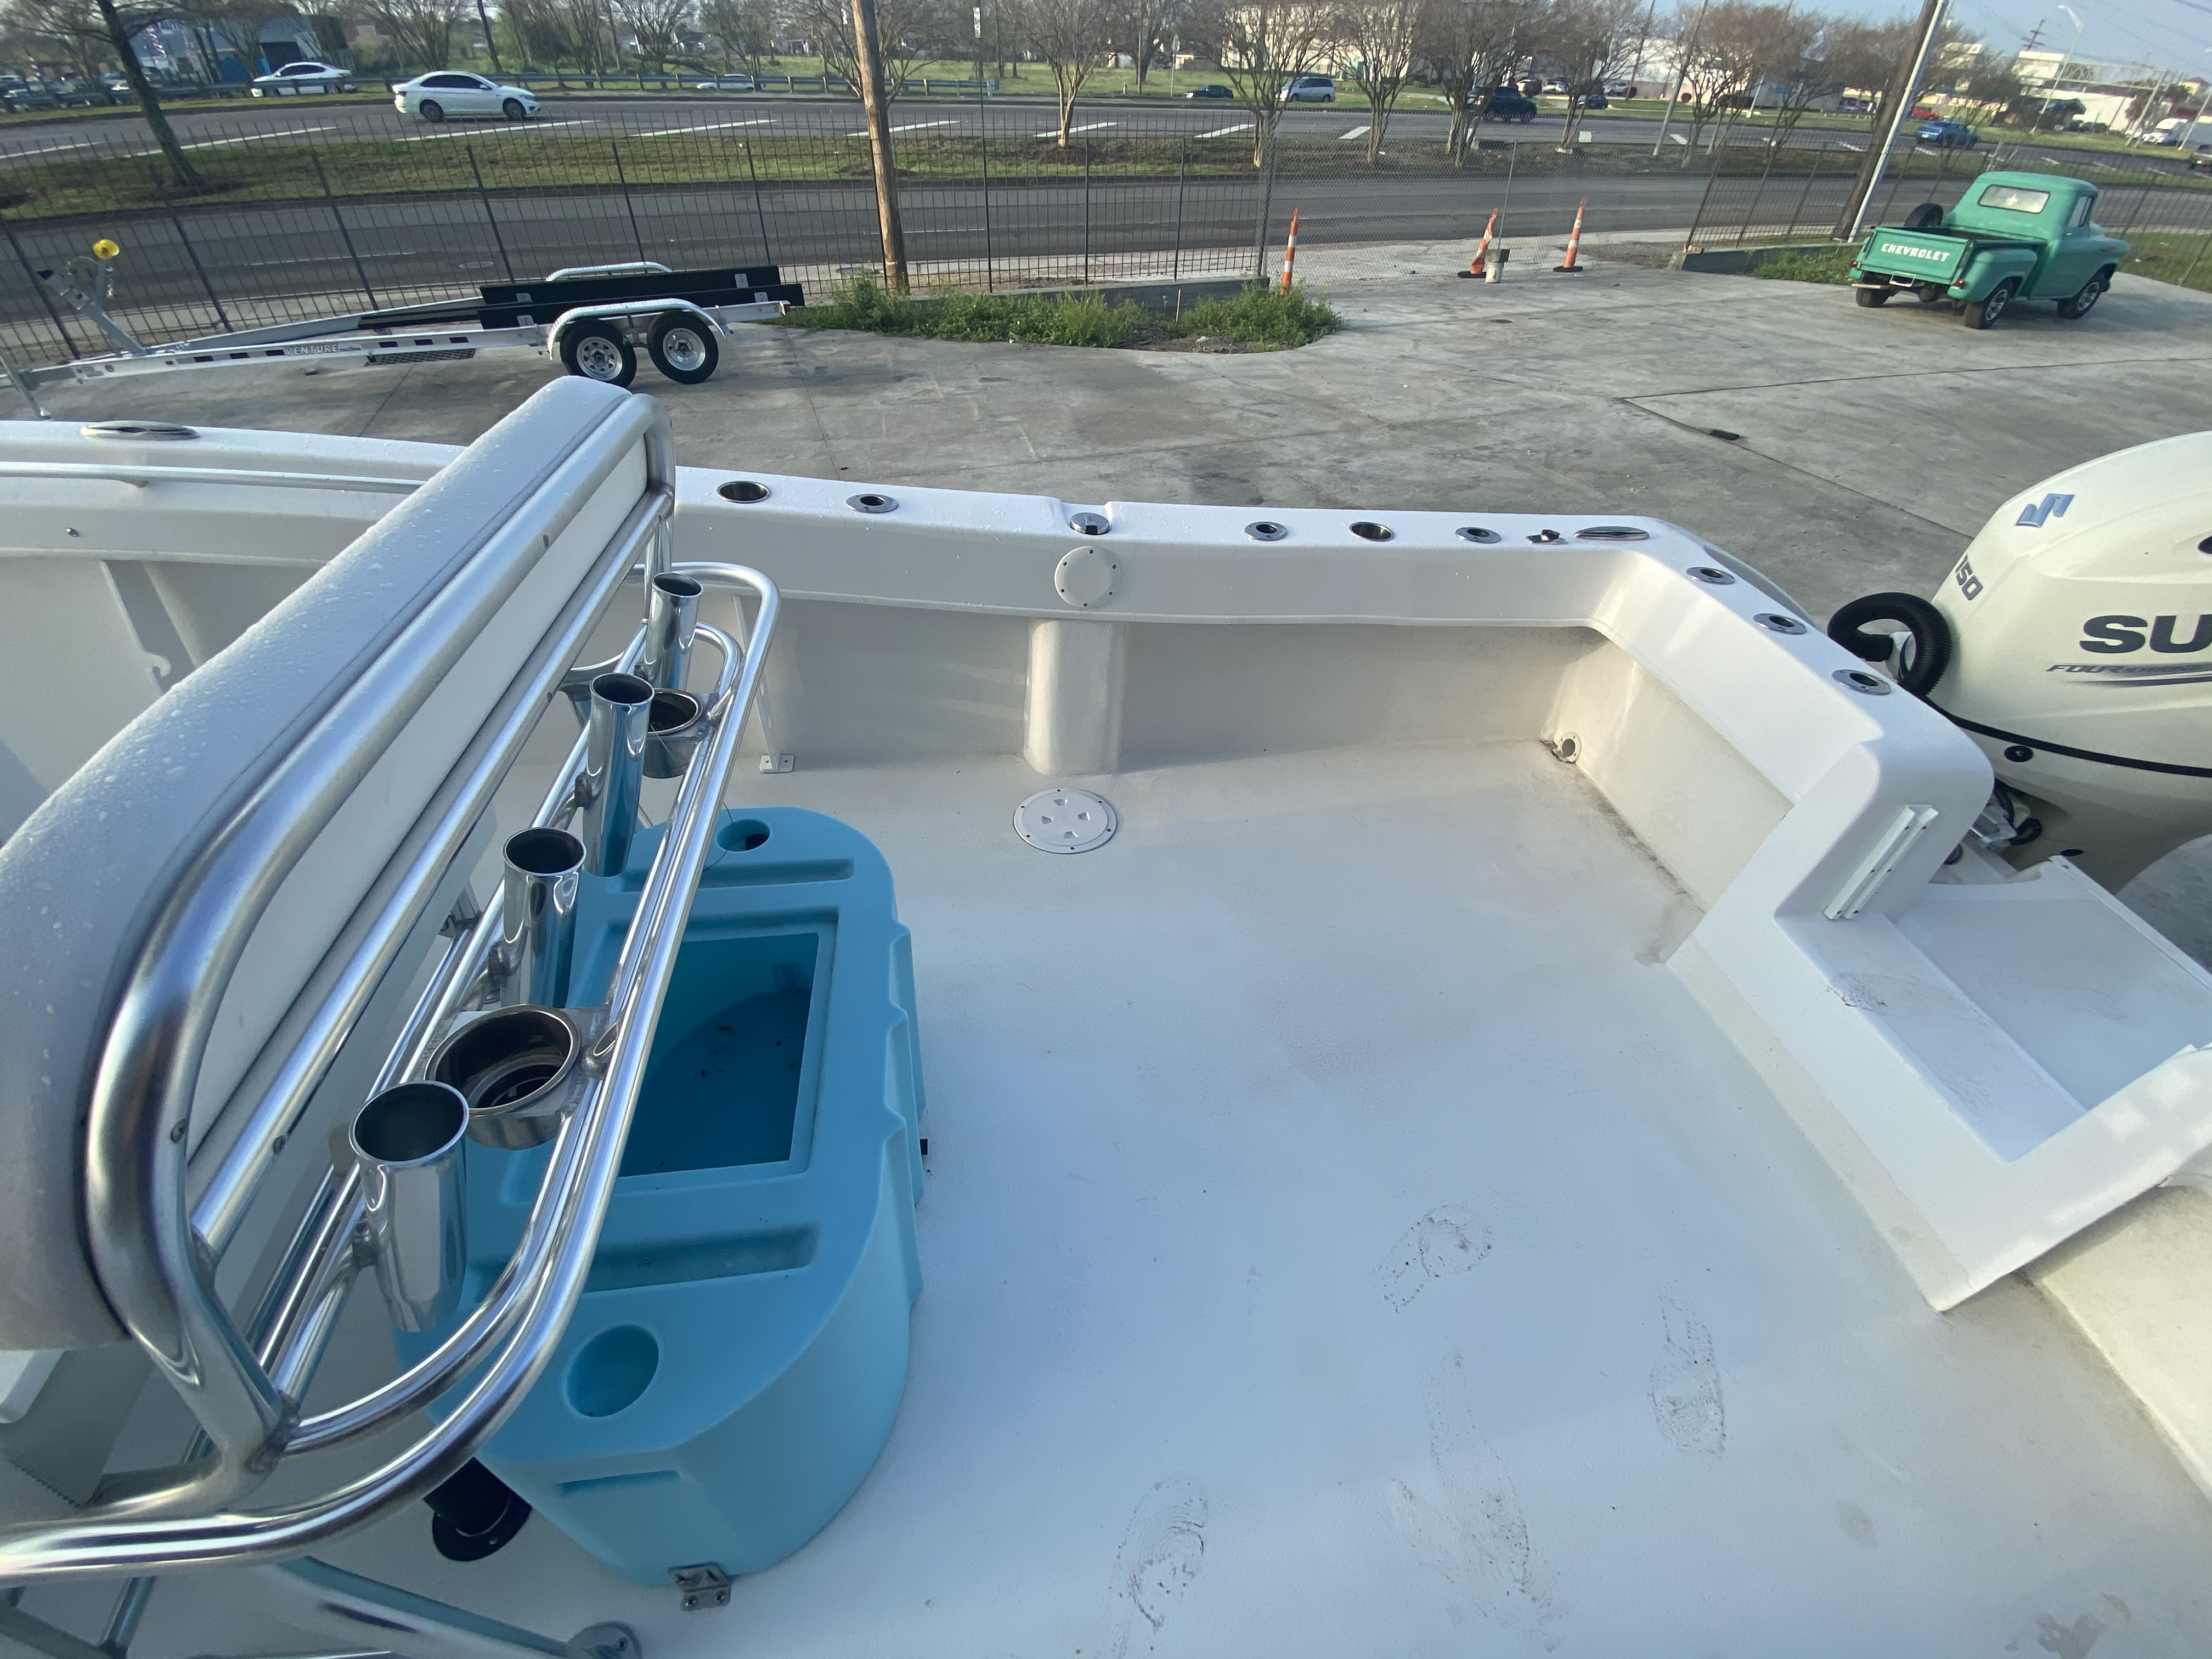 2020 Twin Vee boat for sale, model of the boat is 26 Pro & Image # 9 of 24